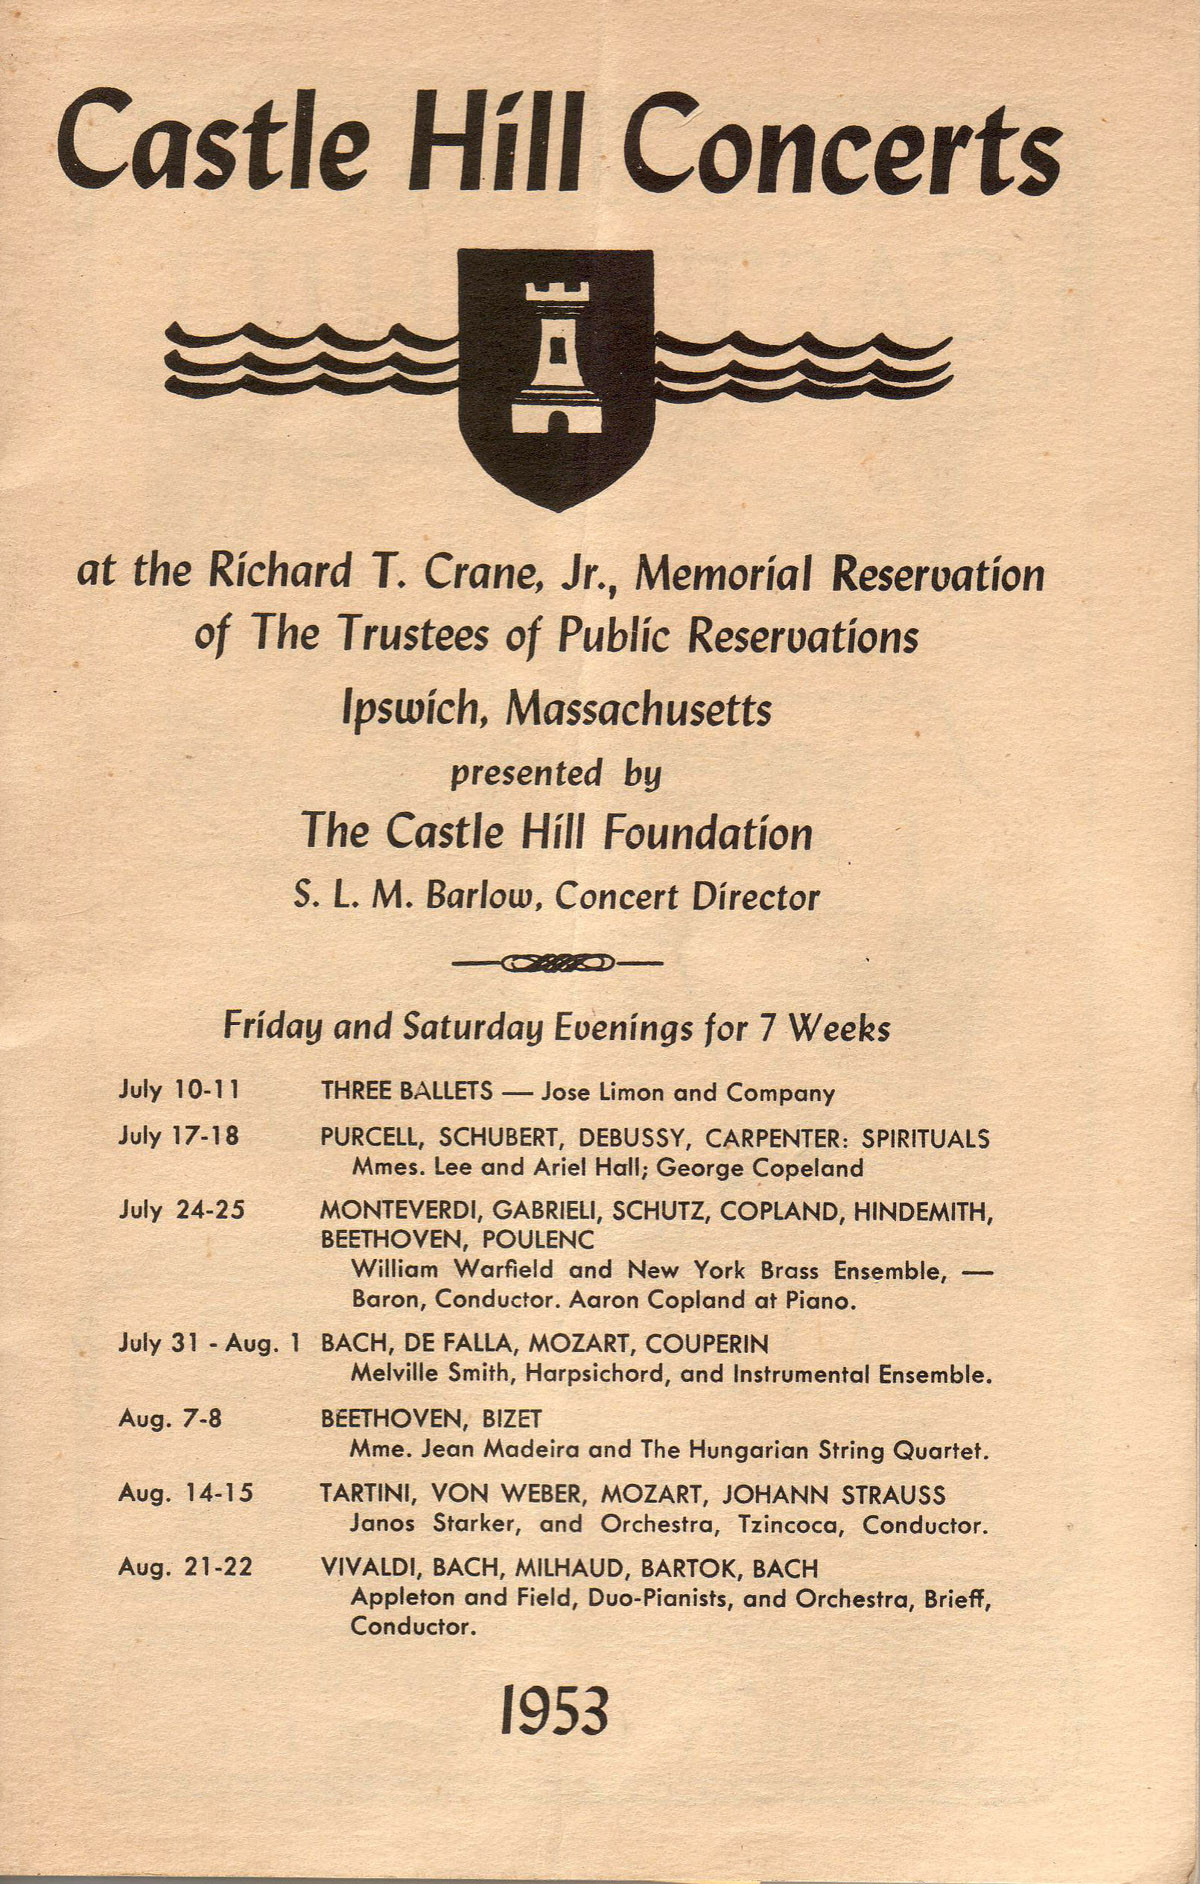 Castle Hill Concerts in 1953